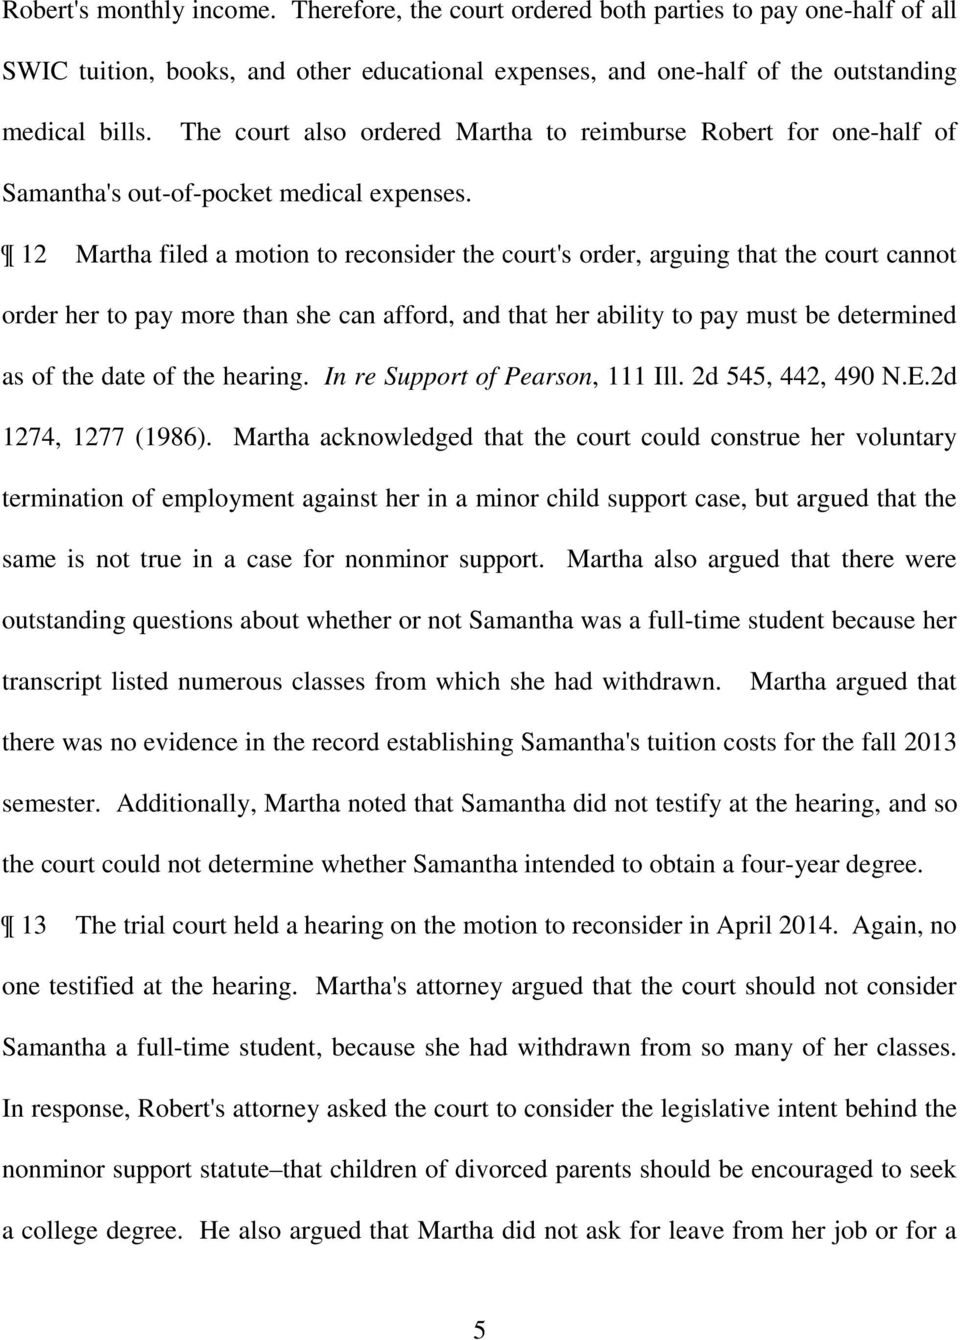 12 Martha filed a motion to reconsider the court's order, arguing that the court cannot order her to pay more than she can afford, and that her ability to pay must be determined as of the date of the